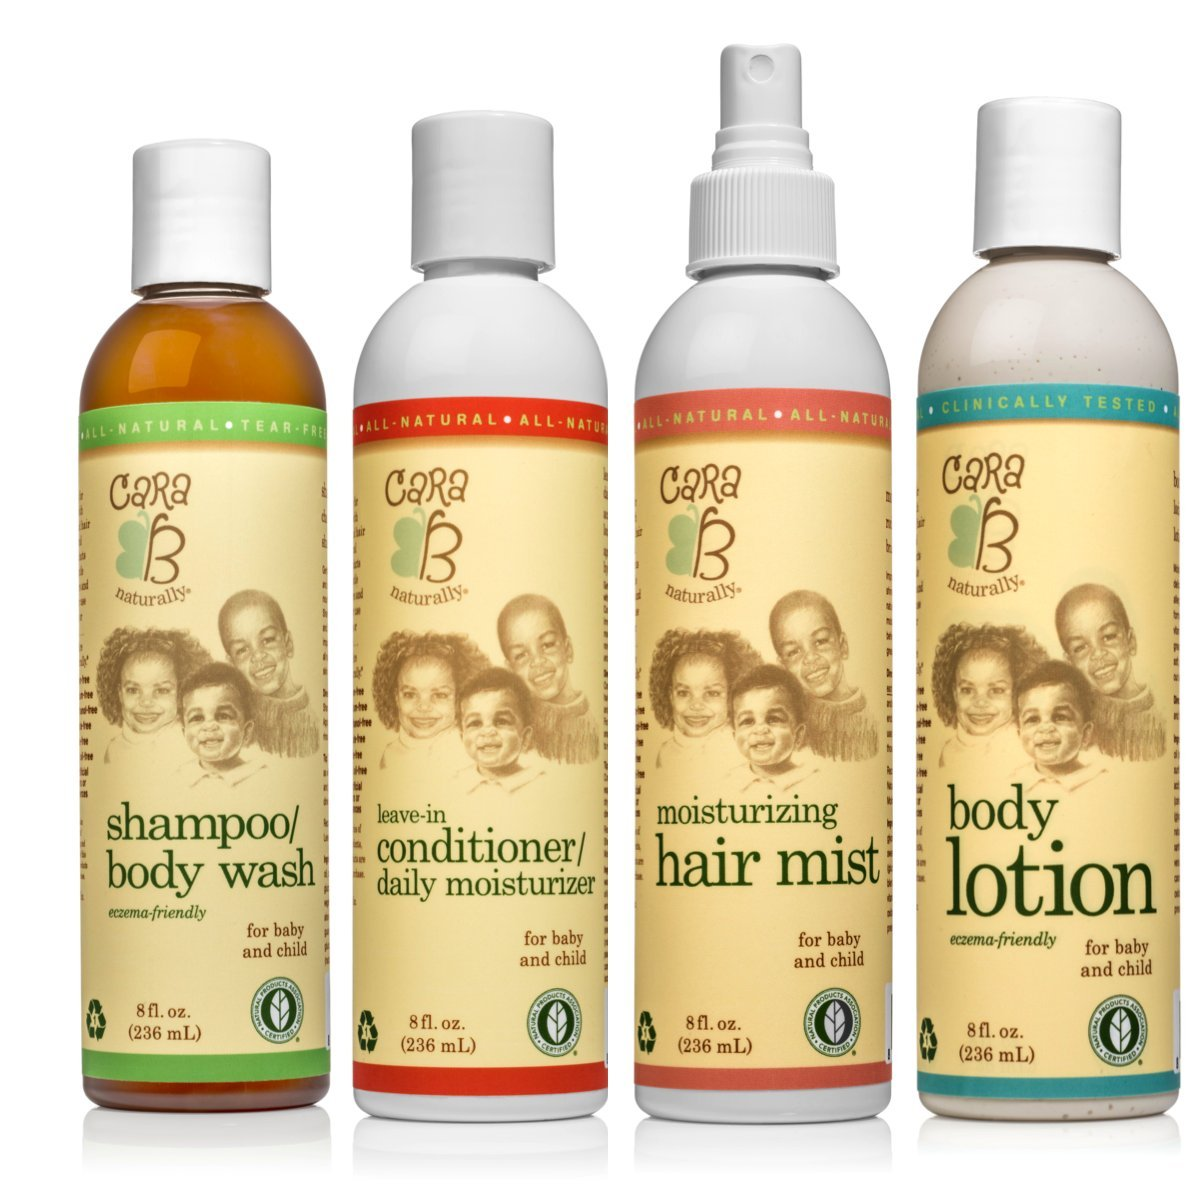 CARA B Naturally Head to Toe Bundle - Shampoo/Body Wash, Leave-In Conditioner/Daily Moisturizer, Moisturizing Hair Mist and Body Lotion – 8 ounces each